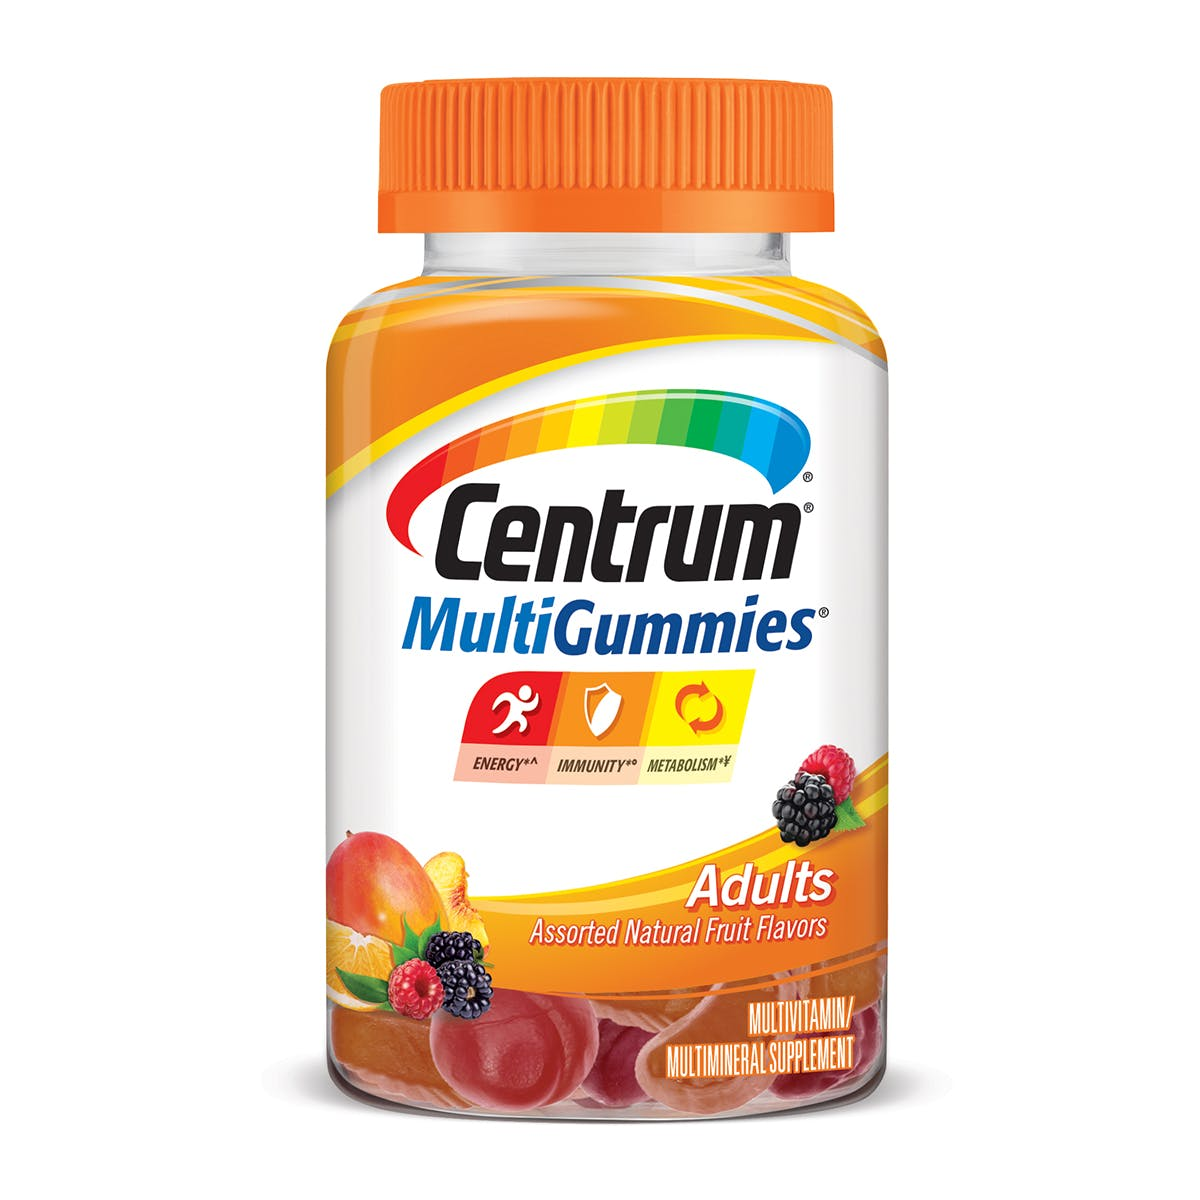 Bottle of centrum multigummies adult vitamins